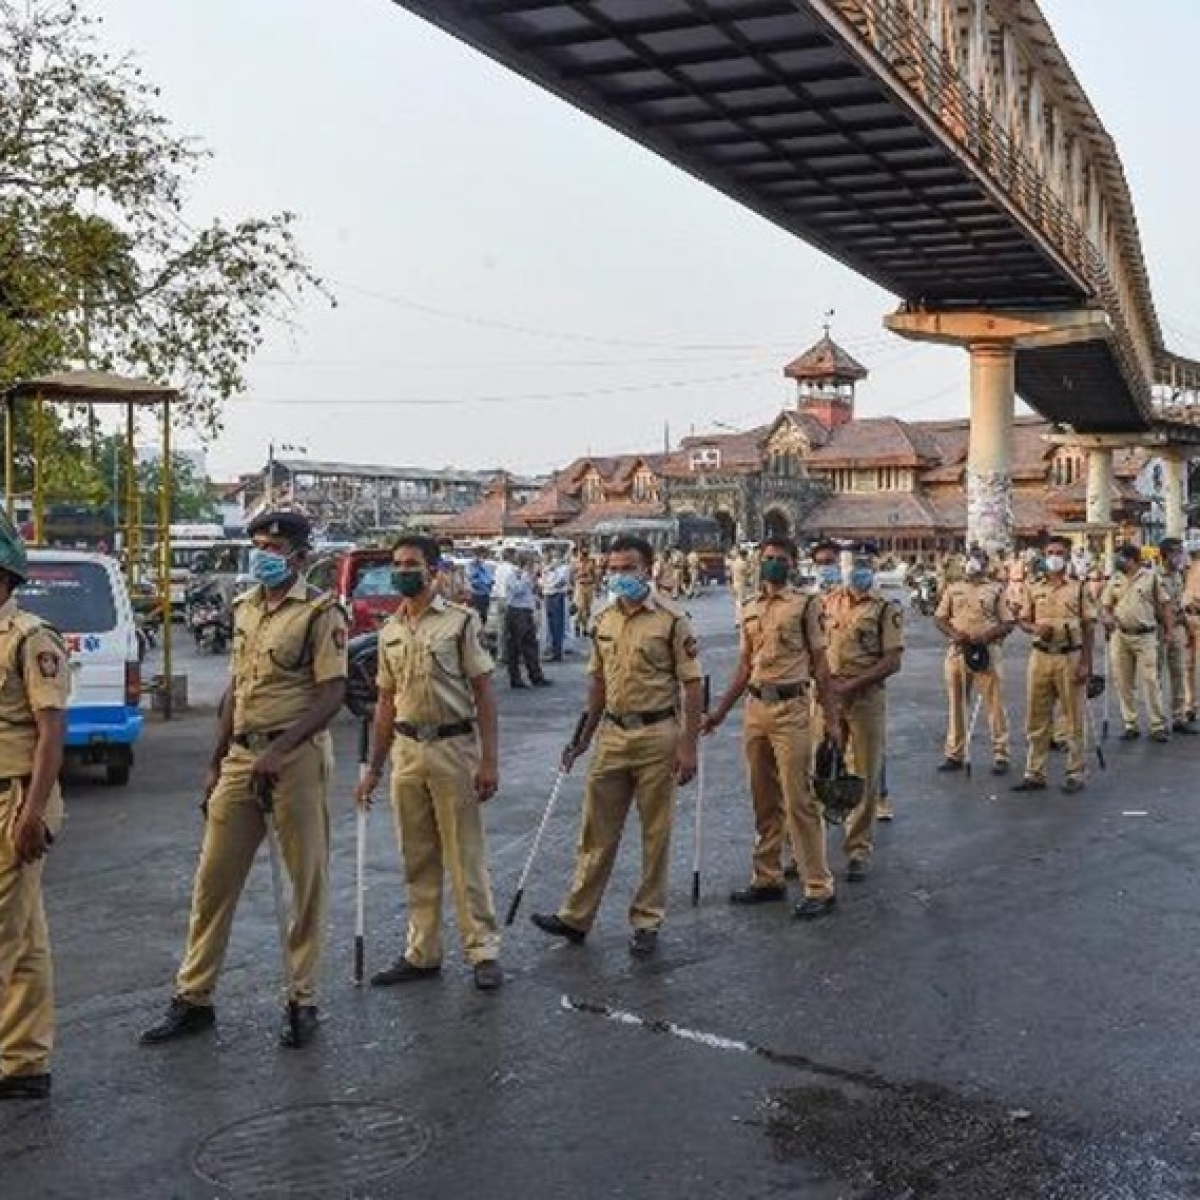 Maharashtra: Amid COVID-19 surge, restrictions imposed in Nashik district